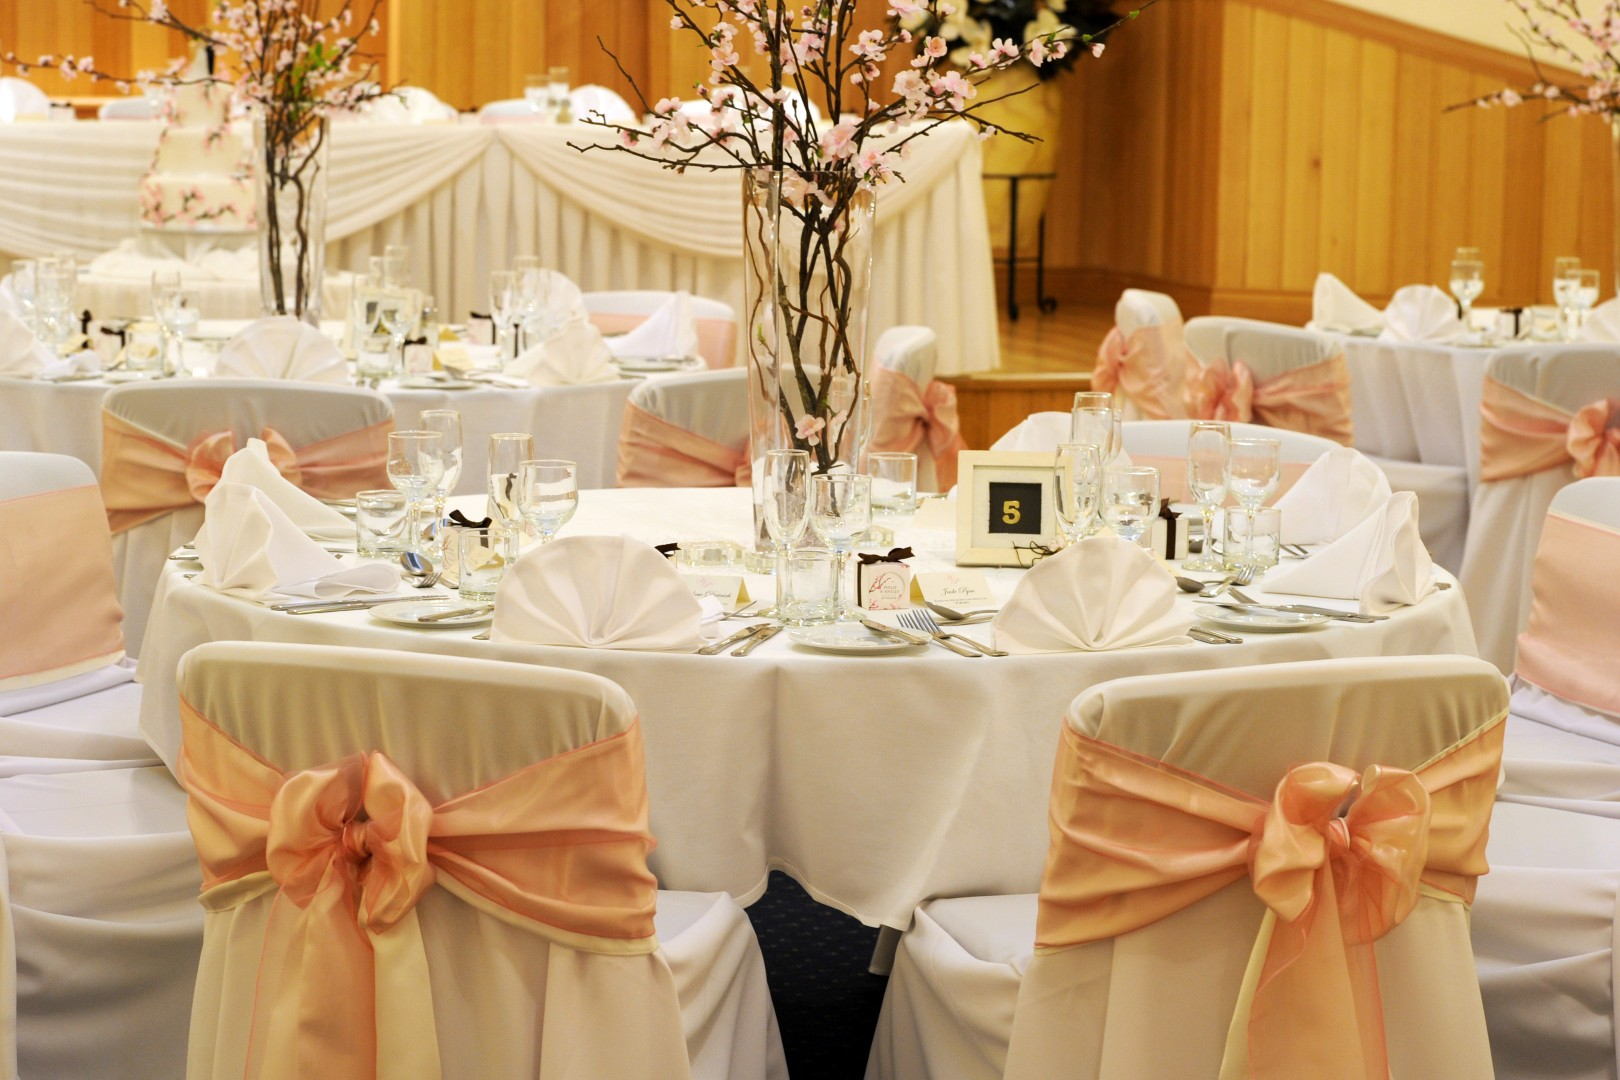 Centrepieces are available for hire as individual items or as an wedding expos junglespirit Image collections